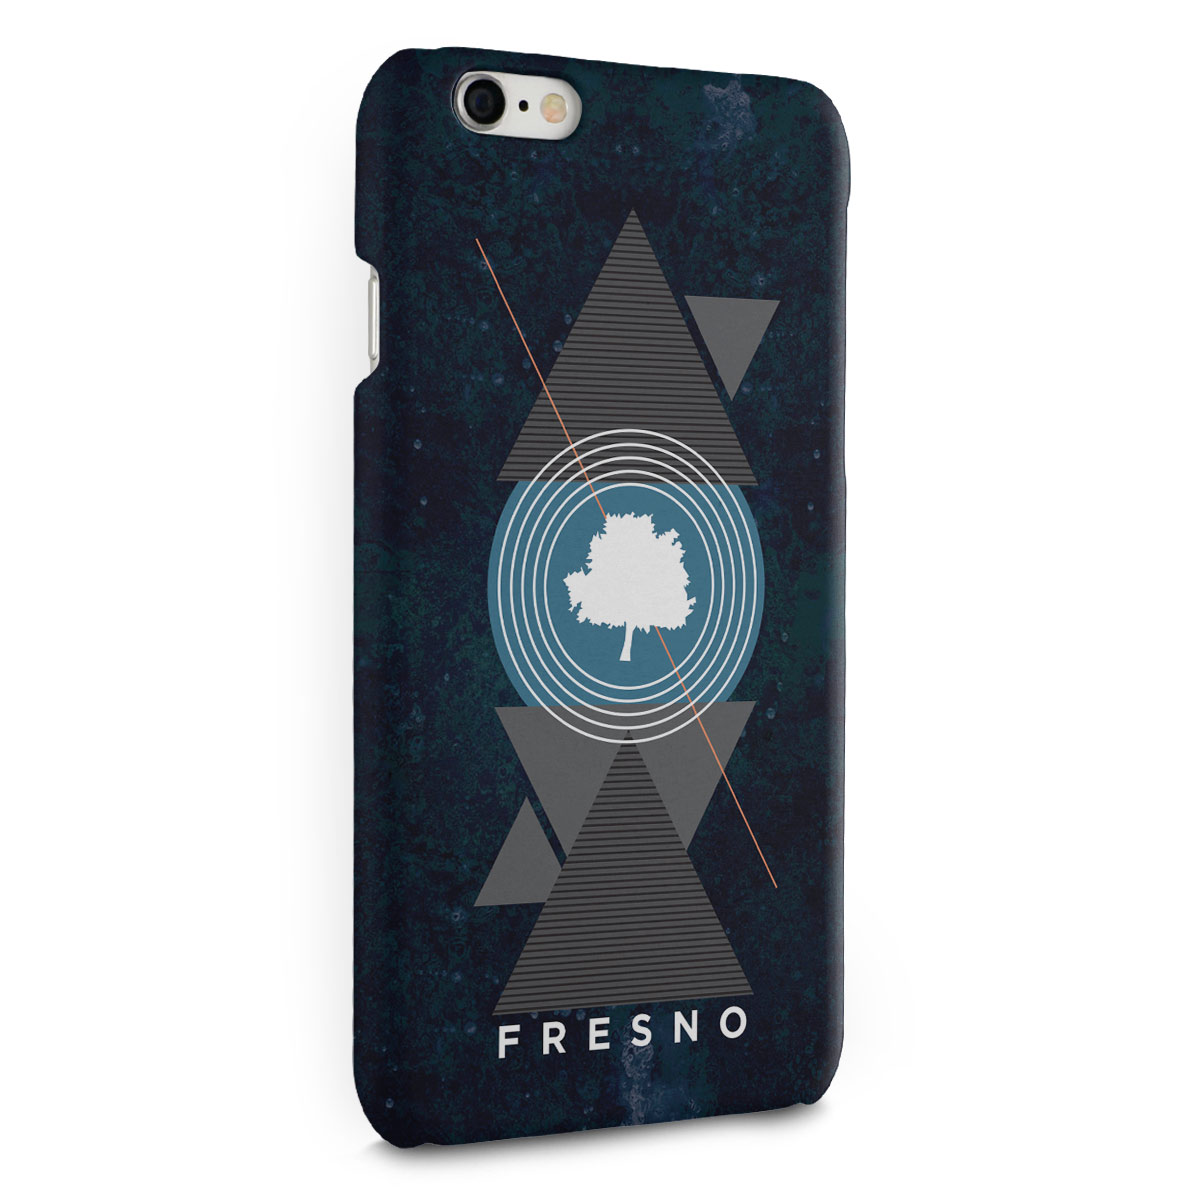 Capa para iPhone 6/6S Plus Fresno Geometric